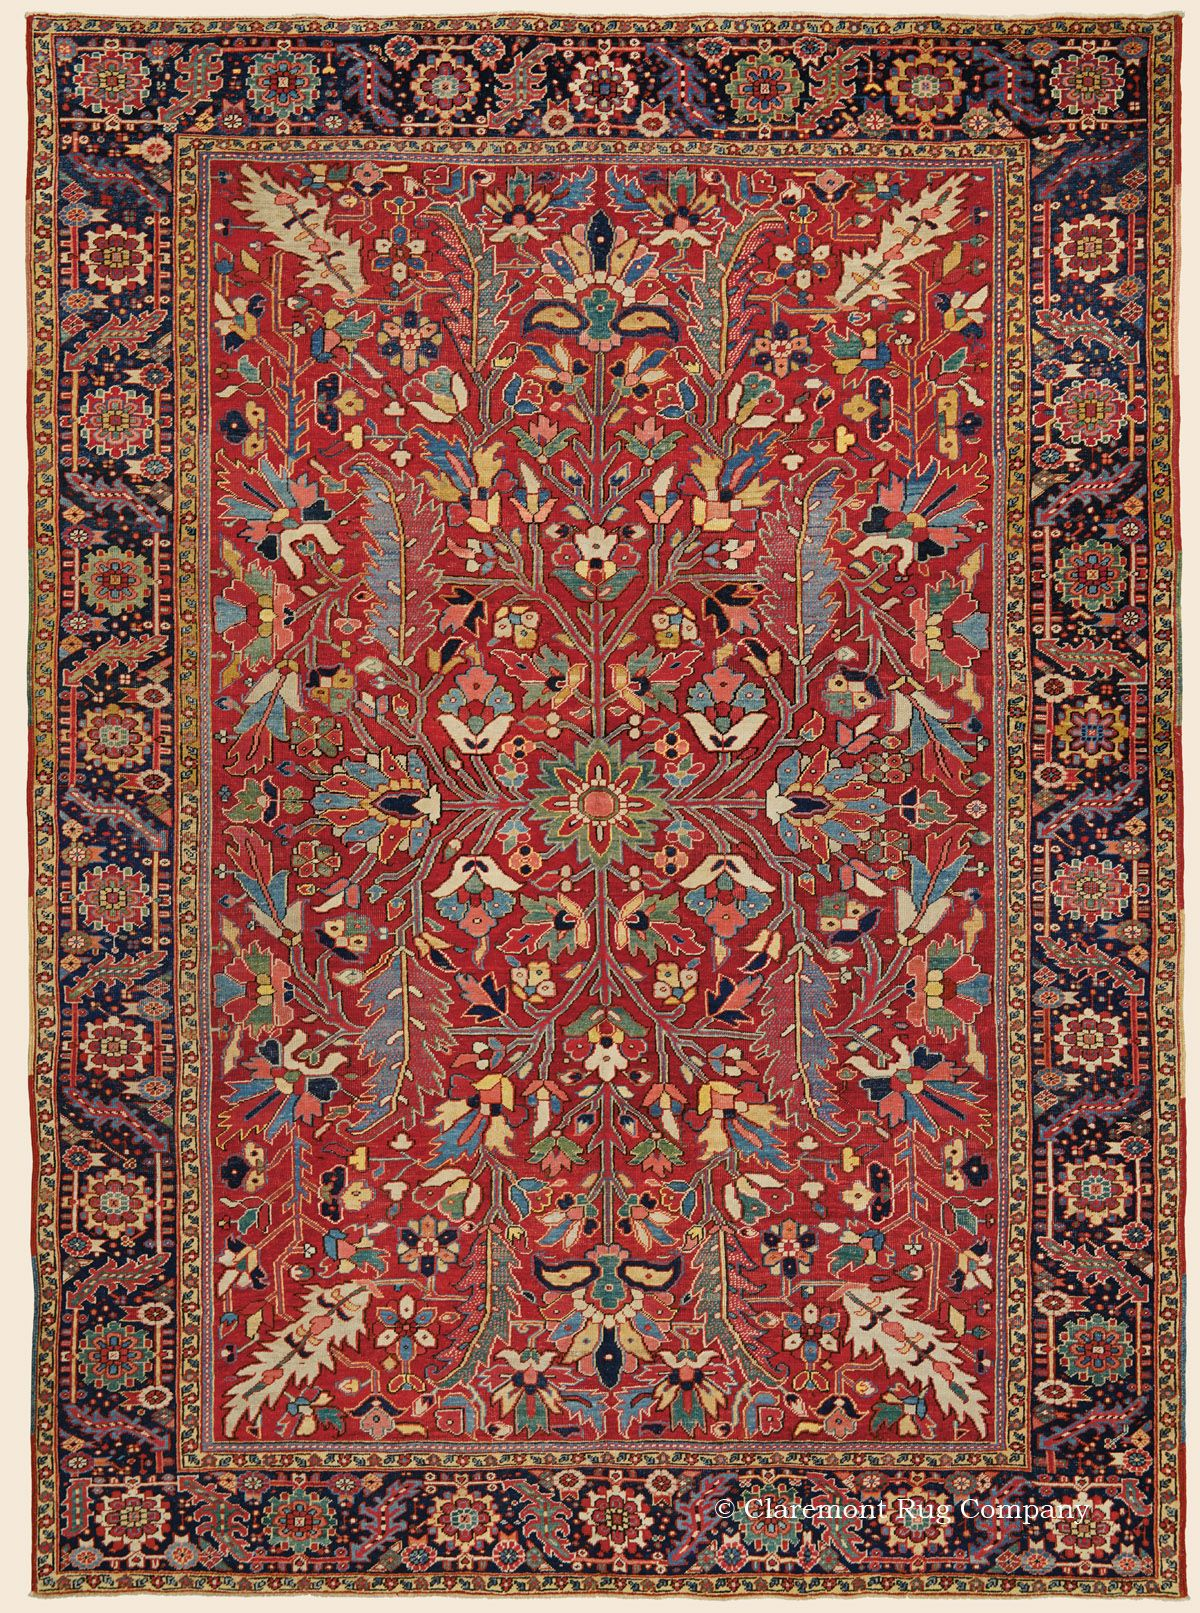 Serapi Heriz 8 9 X 12 0 Circa 1900 Northwest Persian Antique Rug Claremont Rug Company Antique Persian Carpet Rugs On Carpet Carpet Handmade